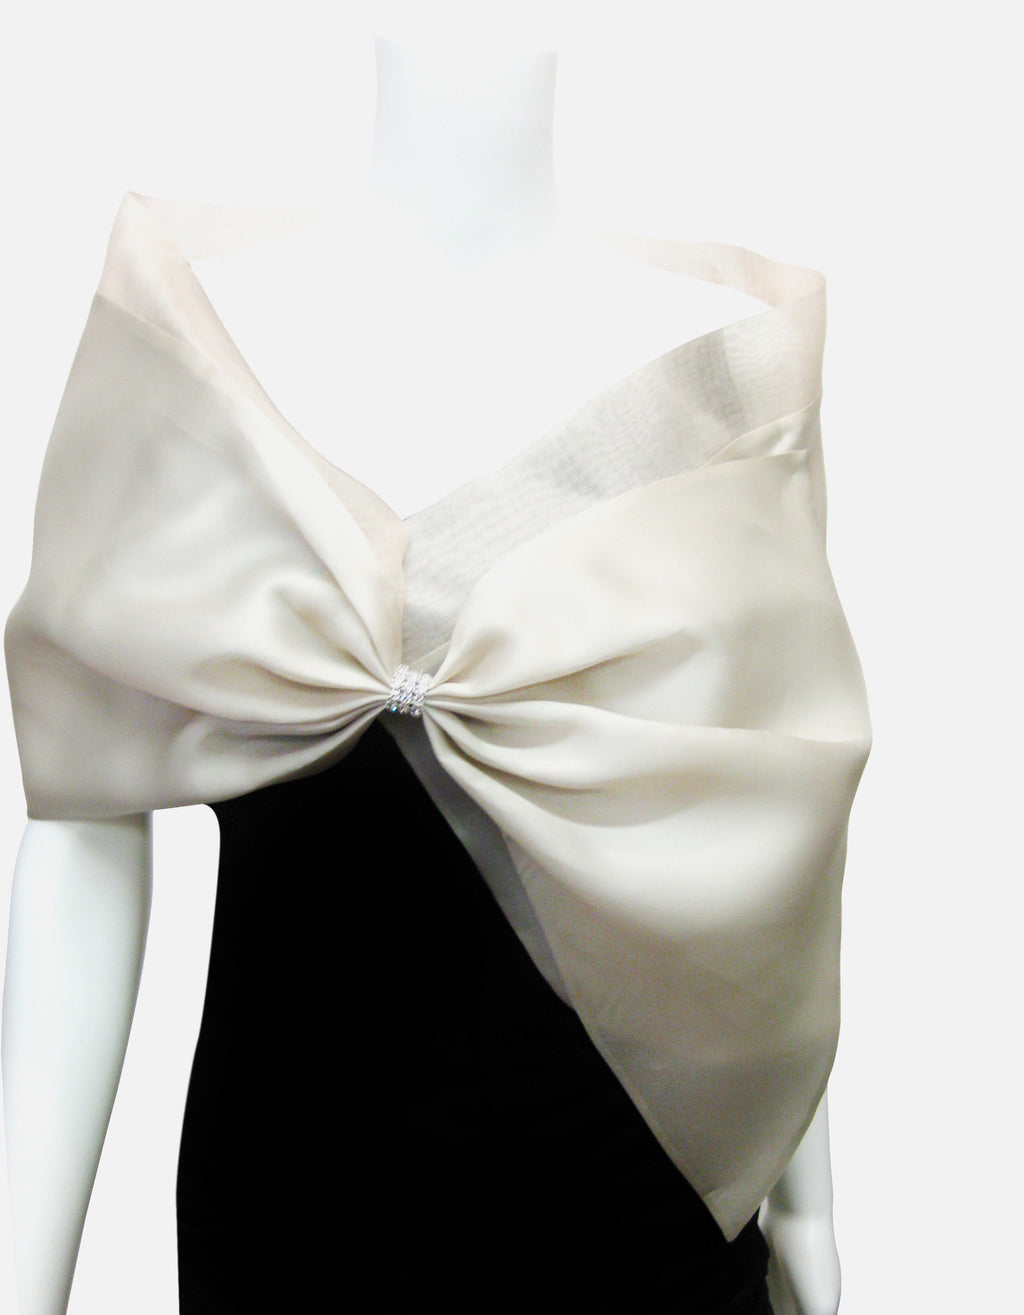 Bridal Satin faced organza wrap with silk organza collar and rhinestone center; snap closure.